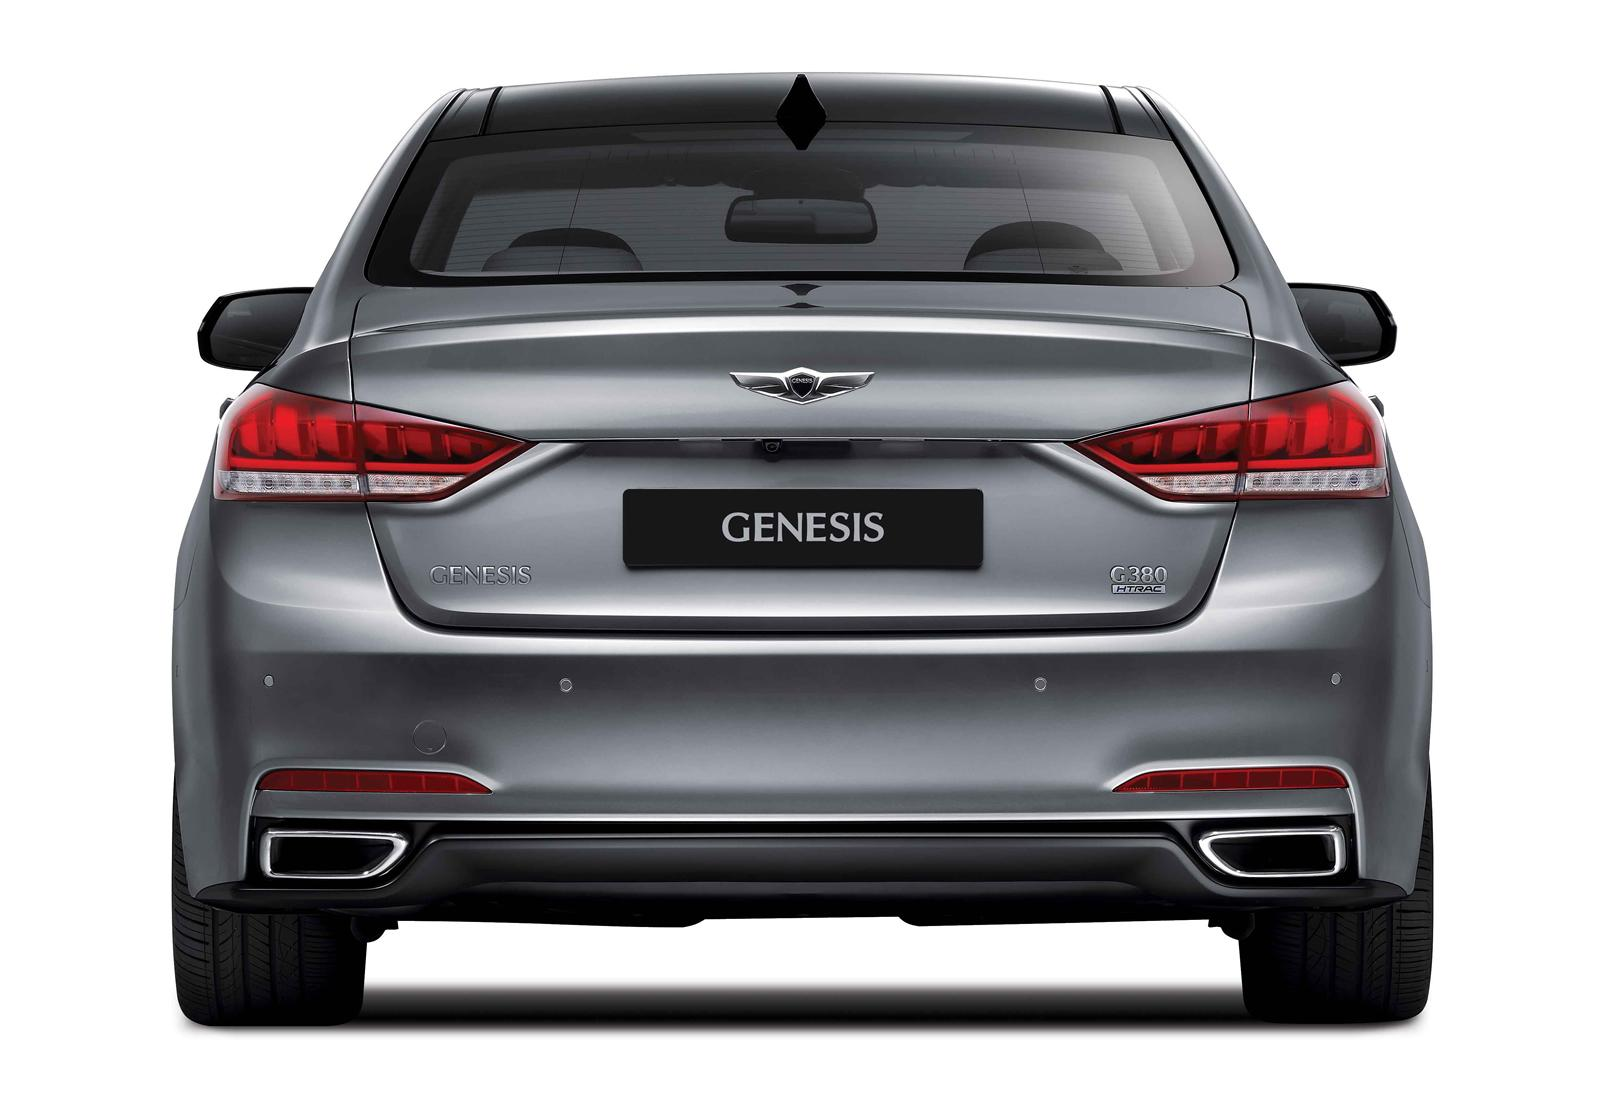 2015 Hyundai Genesis Rear Exterior Design (View 7 of 11)